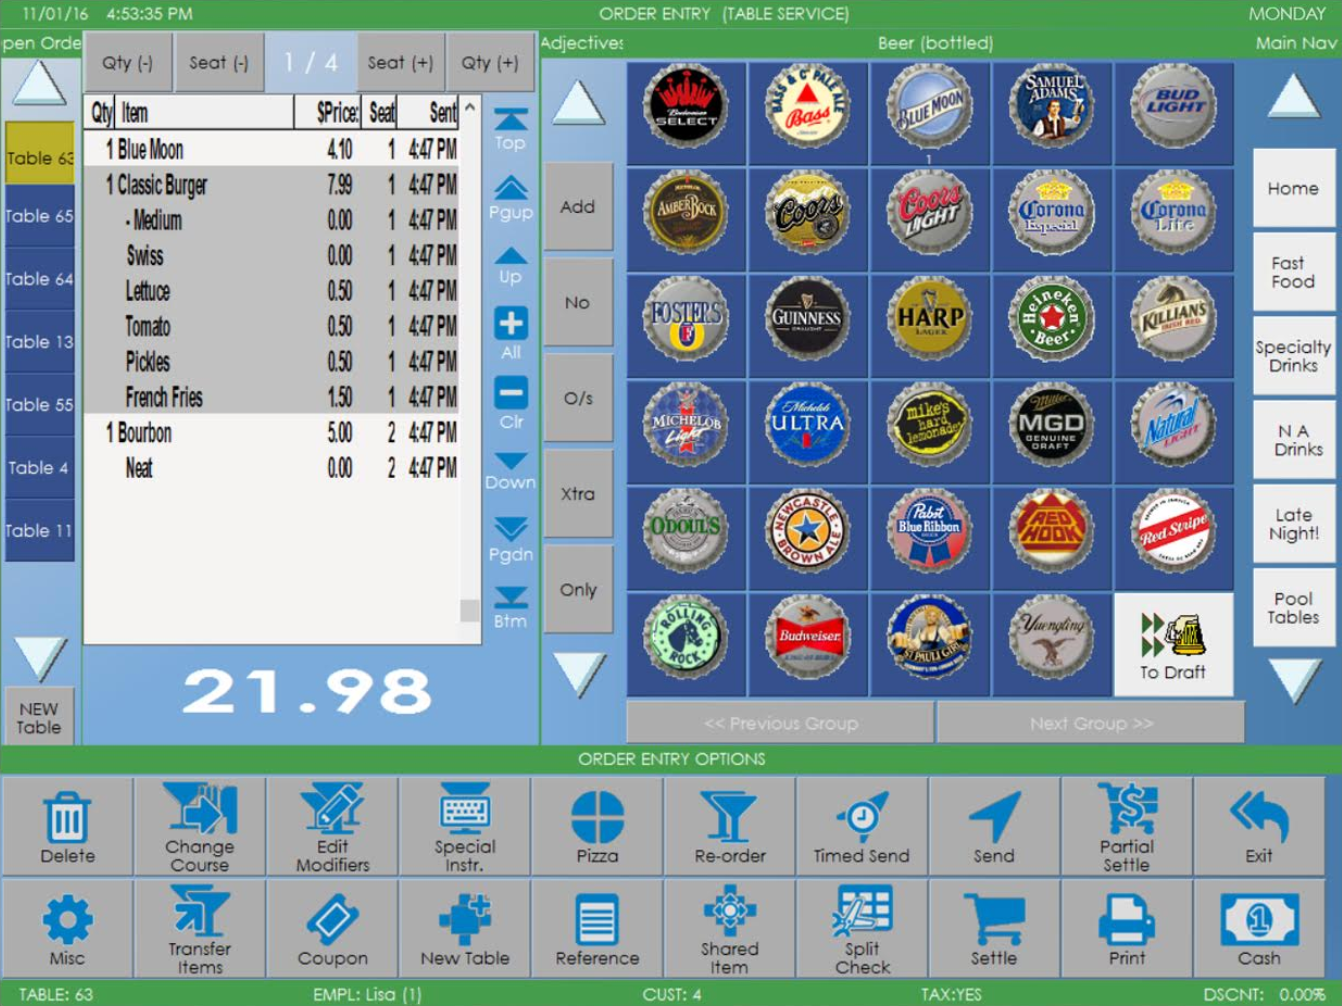 Restaurant Manager by Action Systems Software - Table screen